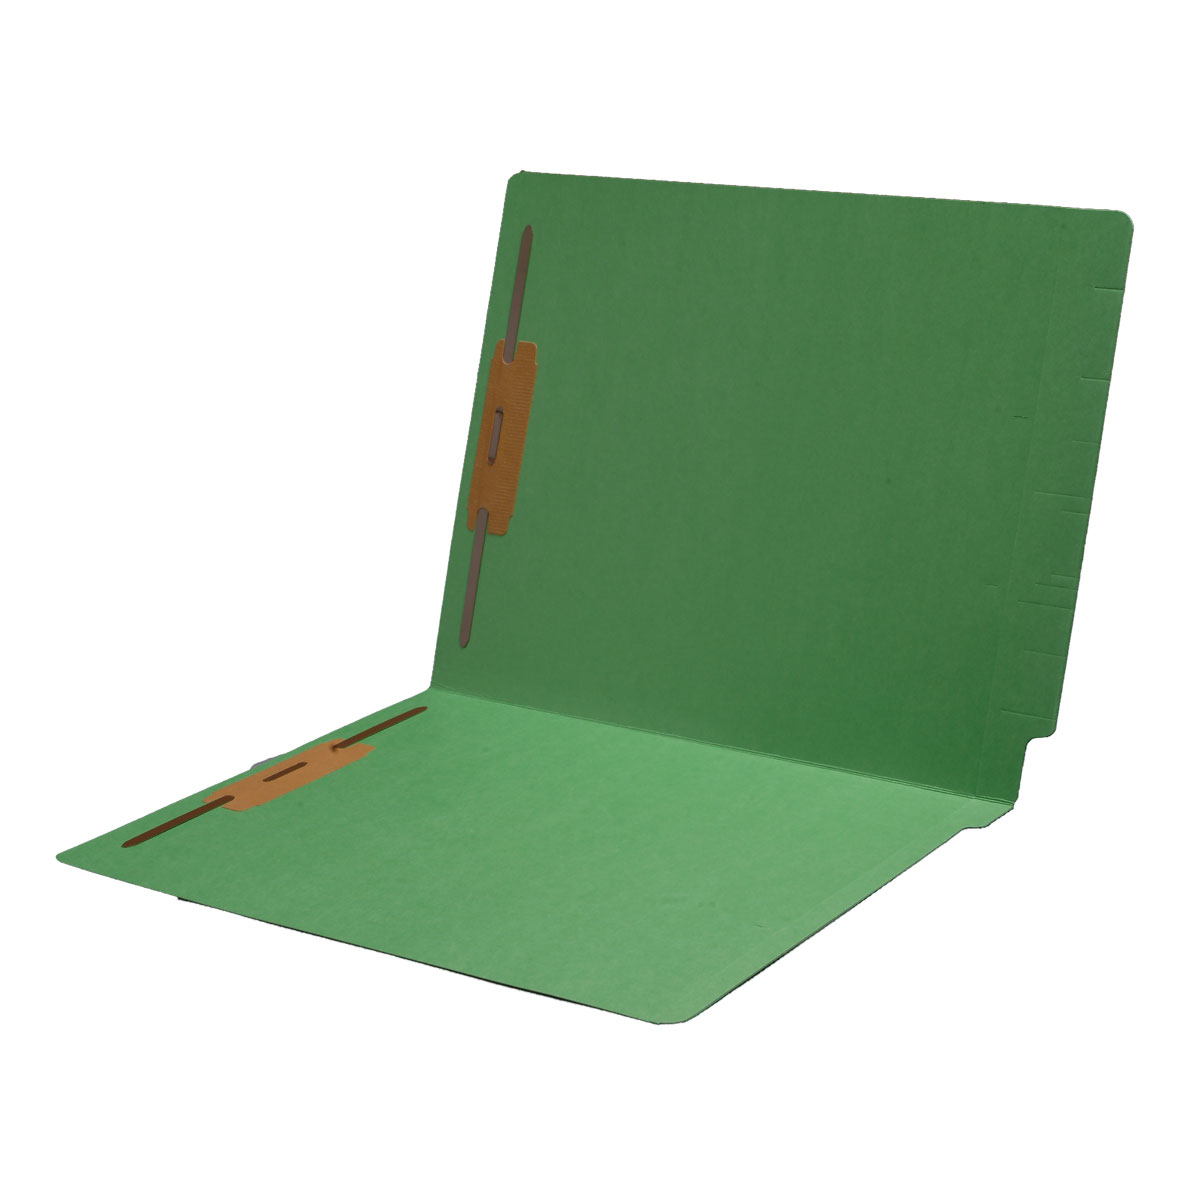 S-1602 - 14 pt Color Folders, Full Cut 2-Ply End Tab, Letter Size, Fastener Pos #1 & #3 (Box of 50)